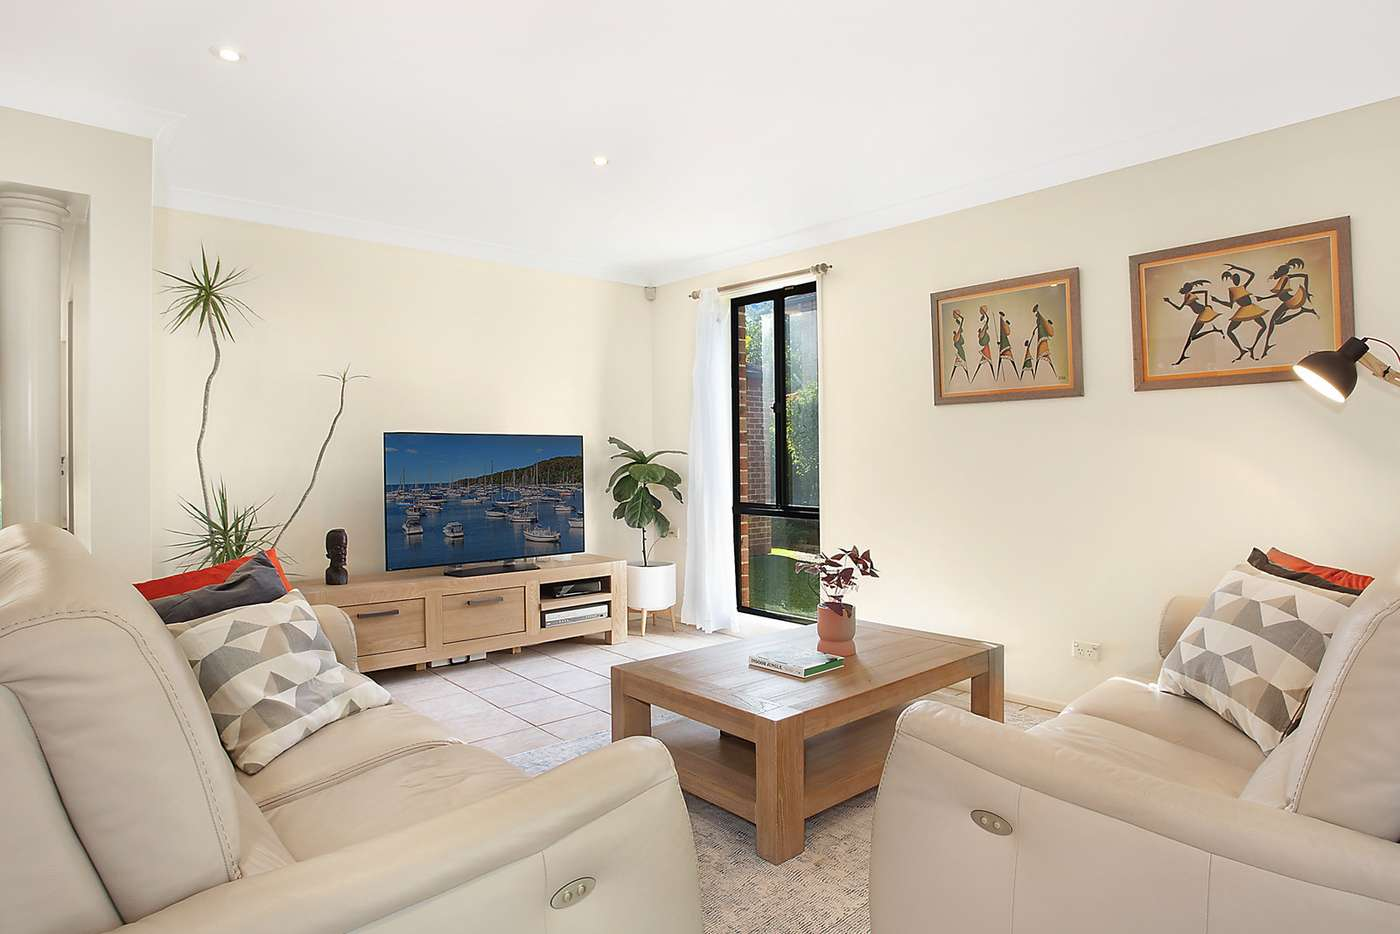 Sixth view of Homely house listing, 16 Thorn Street, Ryde NSW 2112